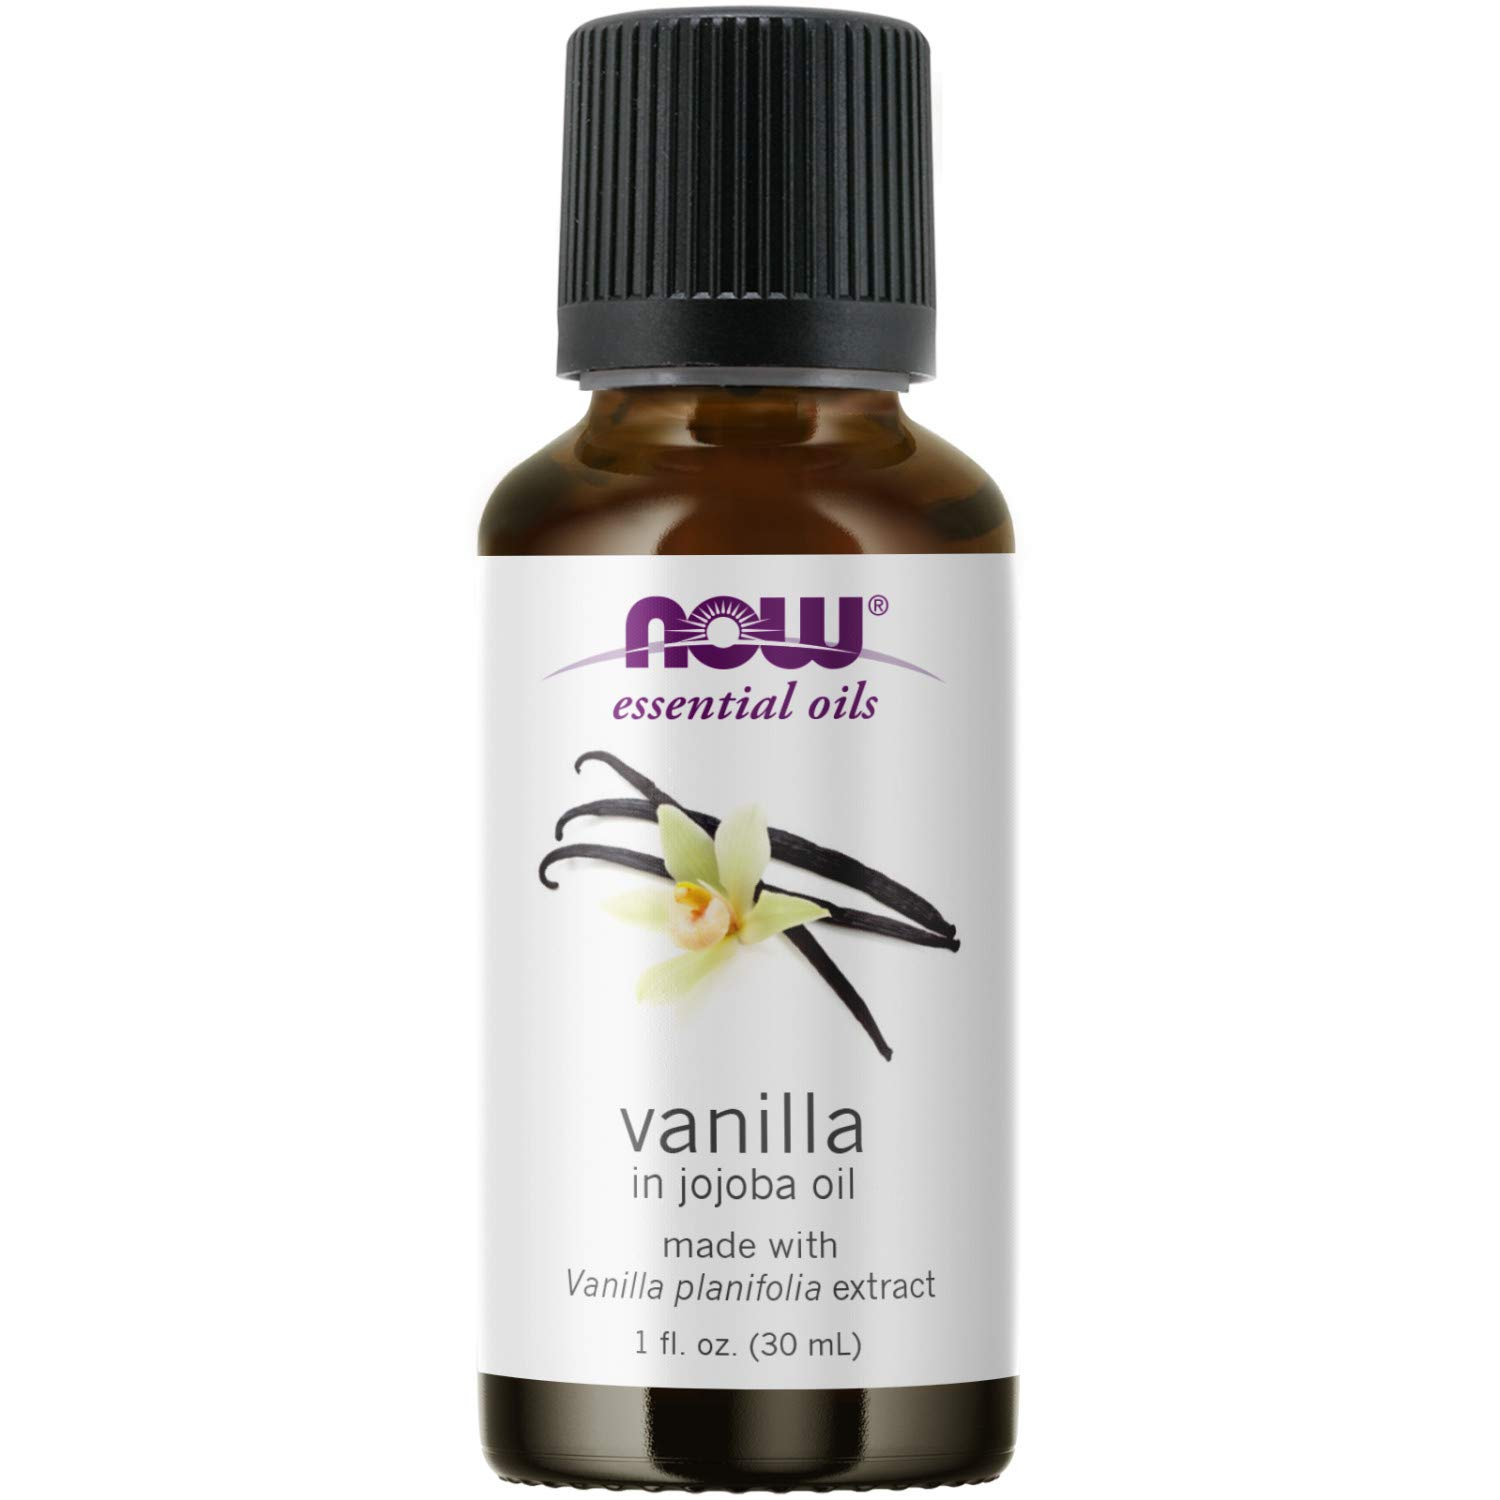 NOW Essential Oils, Vanilla Oil, Blend of Pure Vanilla Bean Extract in Pure Jojoba Oil, Sweet Aromatherapy Scent, Vegan, Child Resistant Cap, 1-Ounce